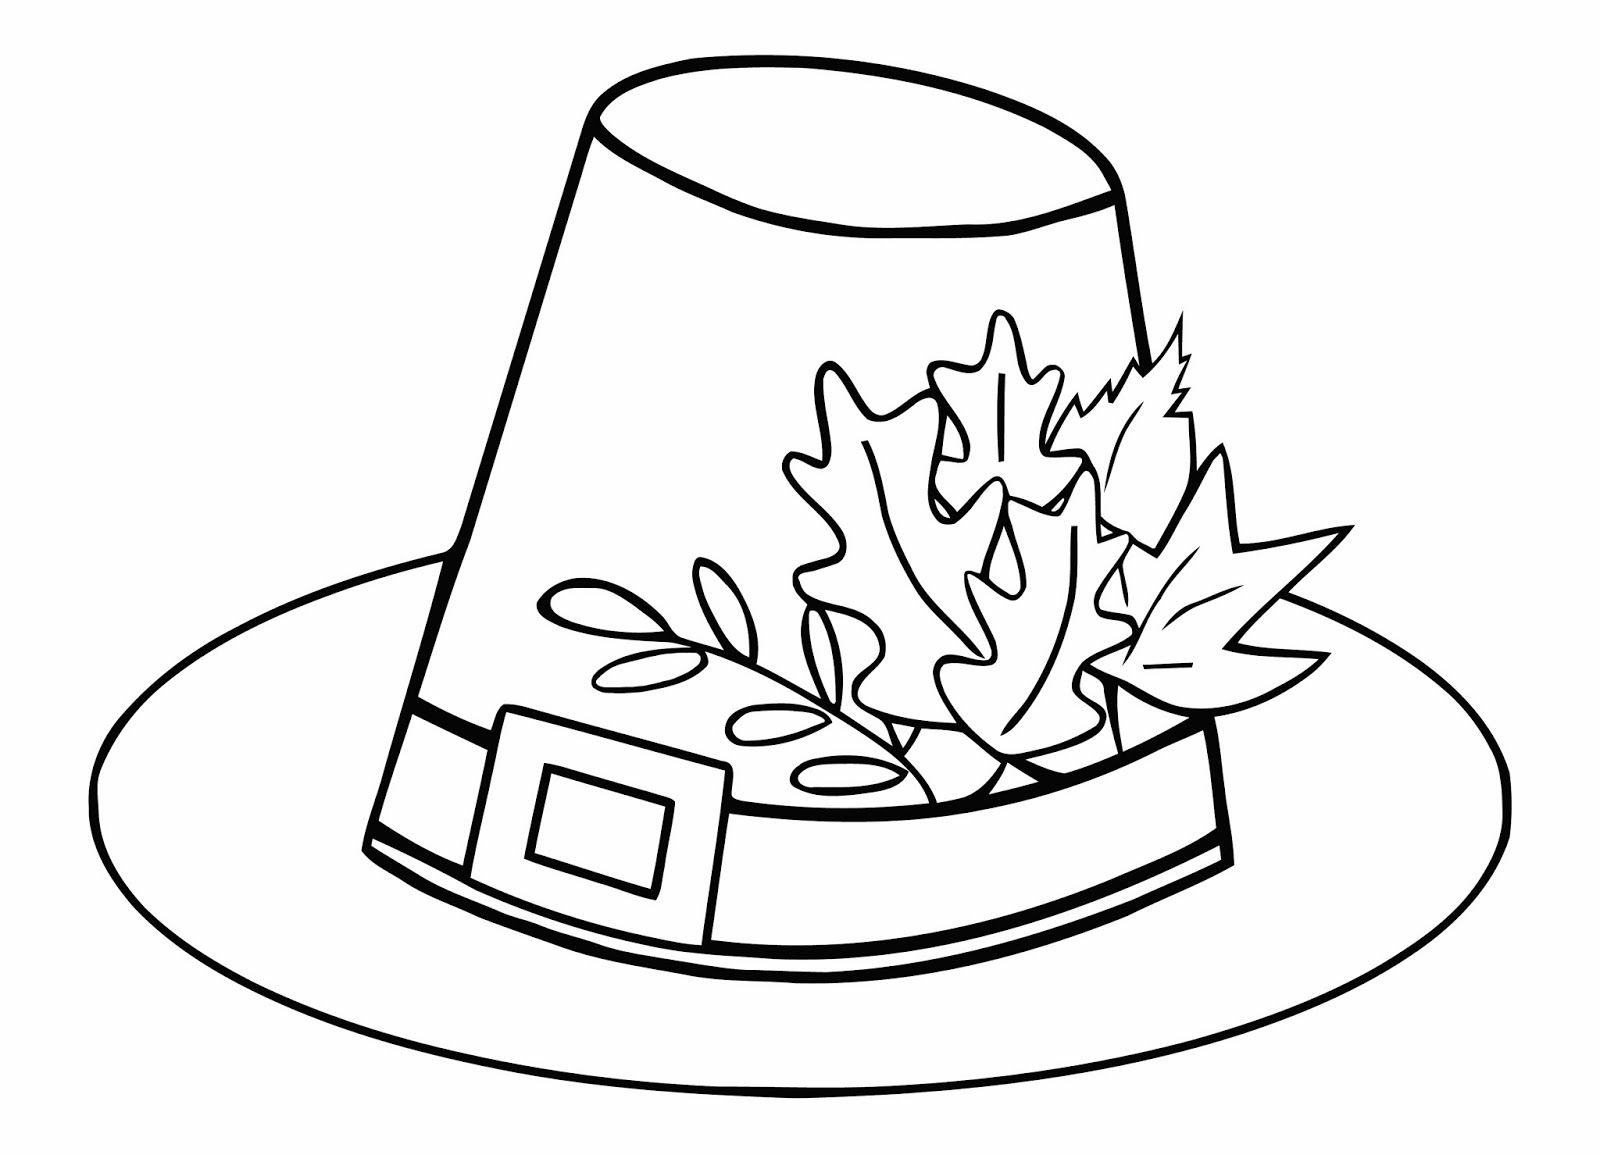 Thanksgiving Coloring Pages   Moms Bookshelf & More: Thanksgiving ...